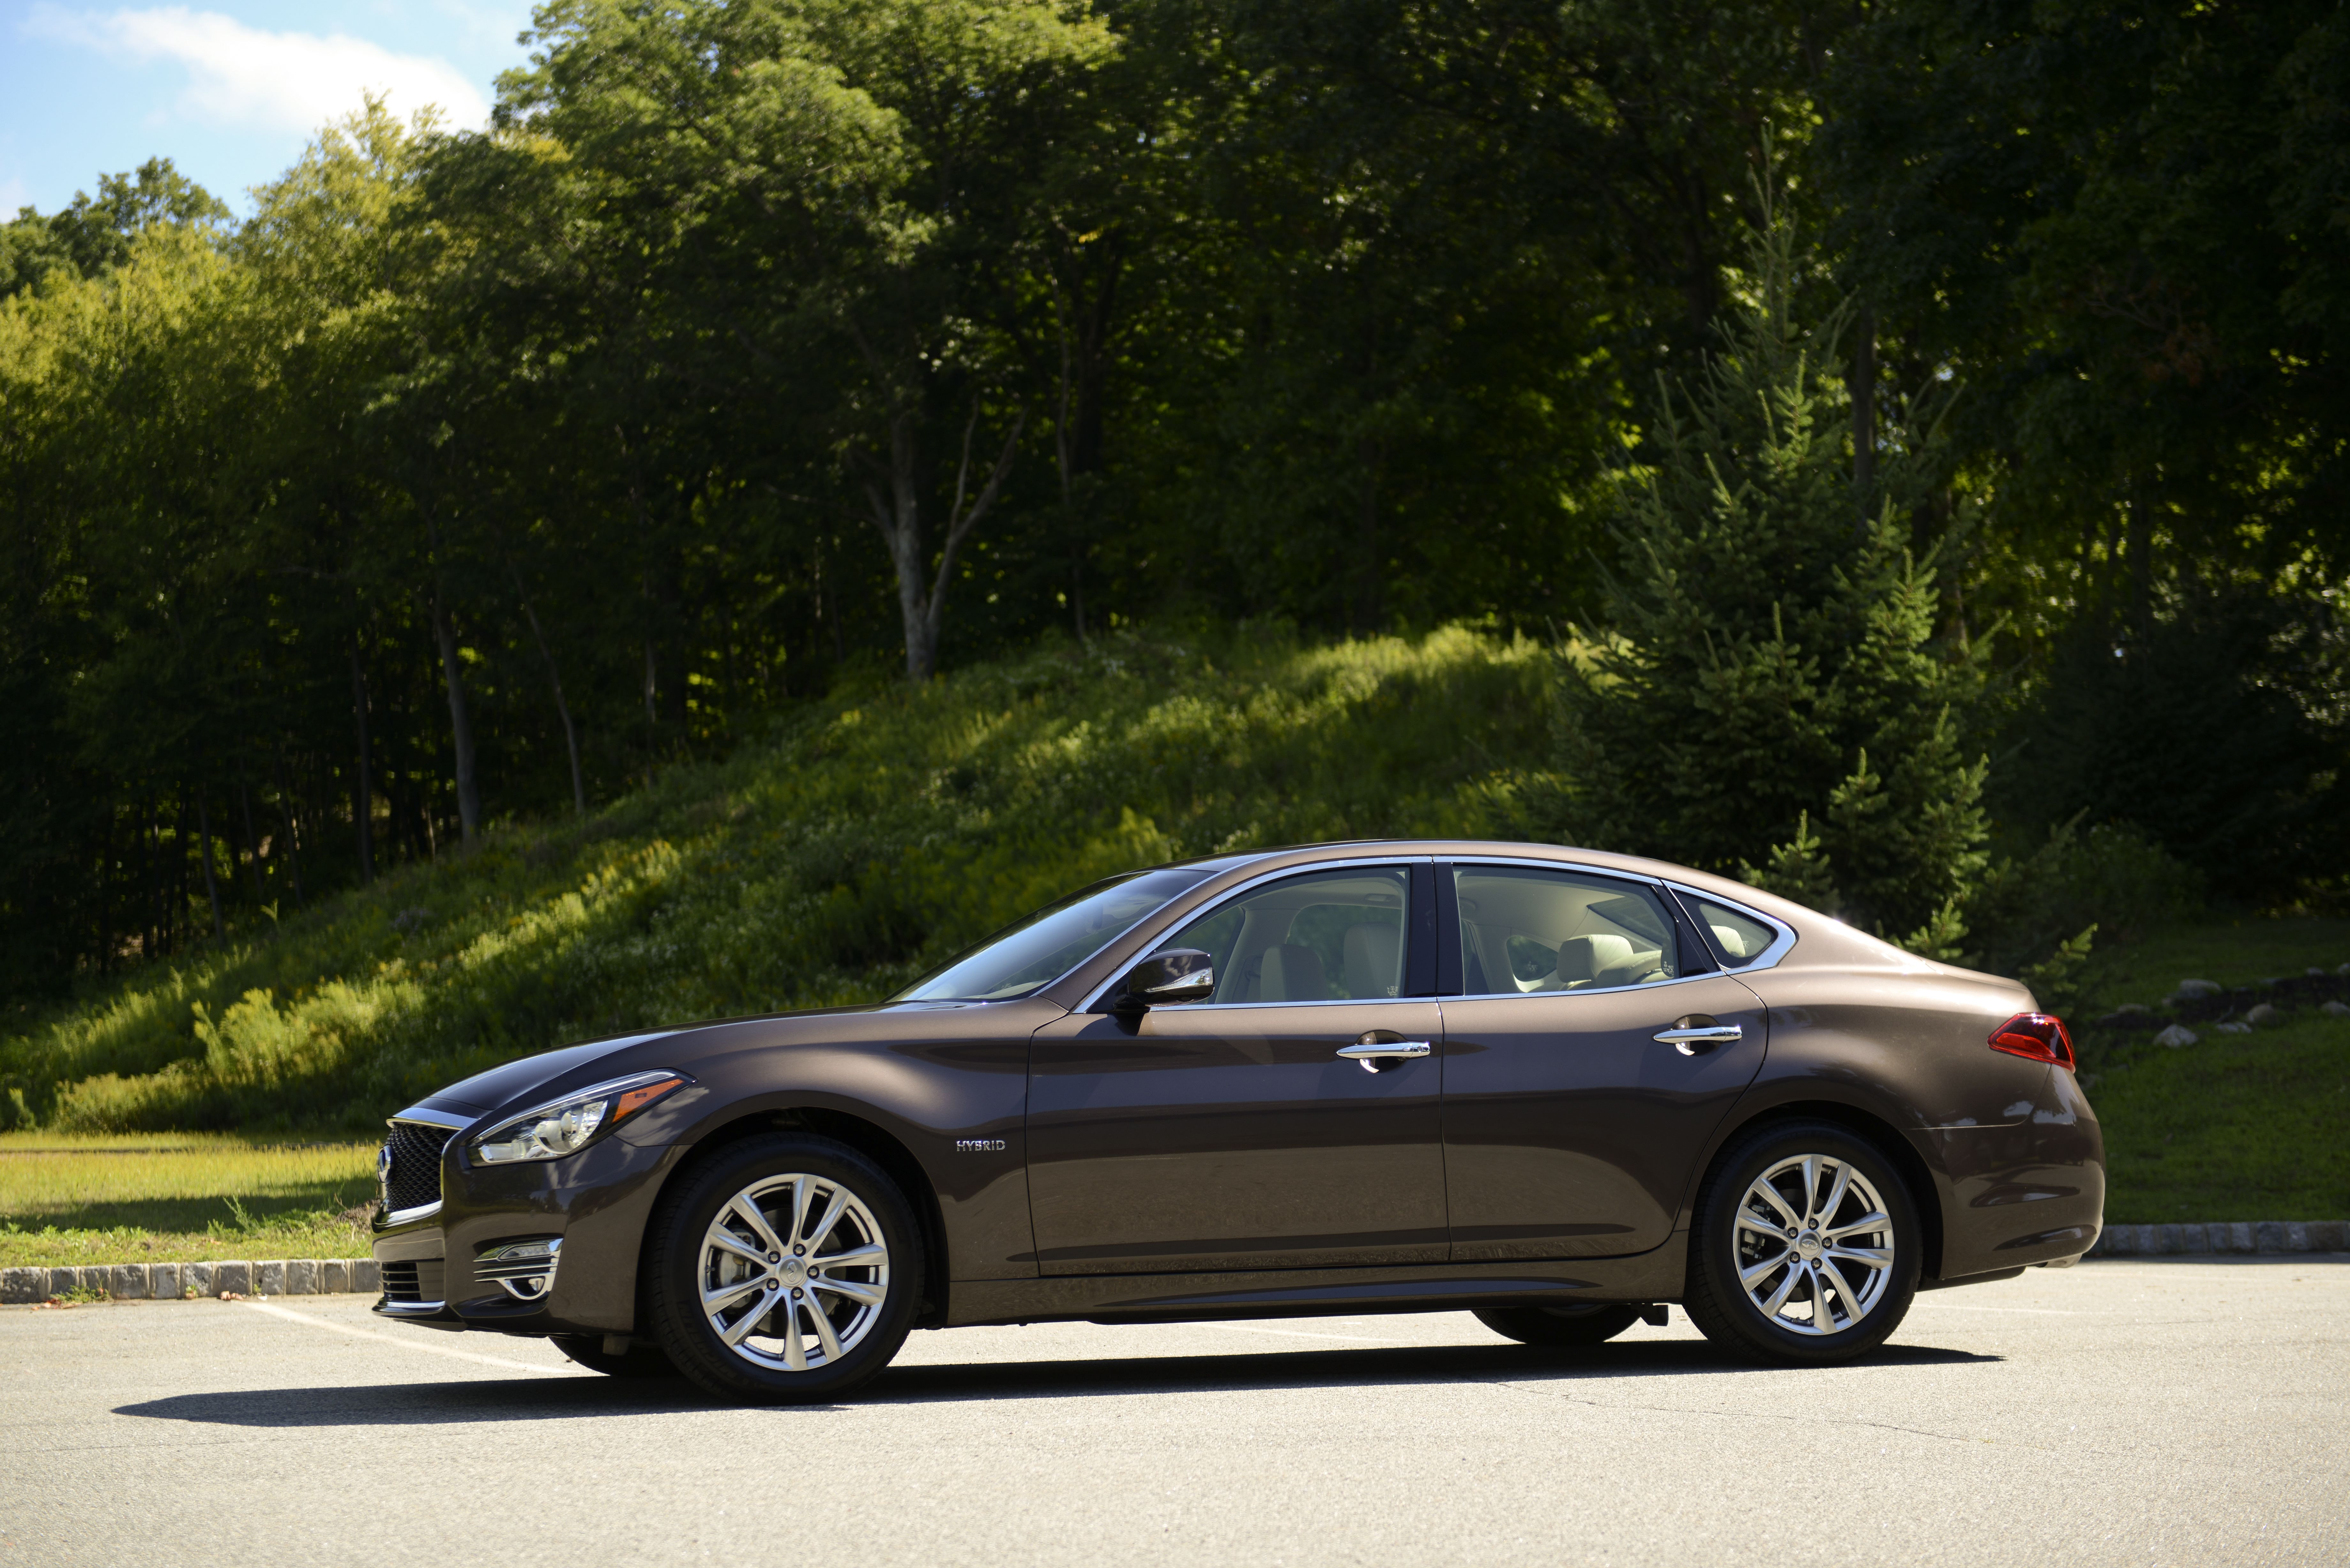 2016 infiniti q70 u s prices are finally revealed autoevolution. Black Bedroom Furniture Sets. Home Design Ideas